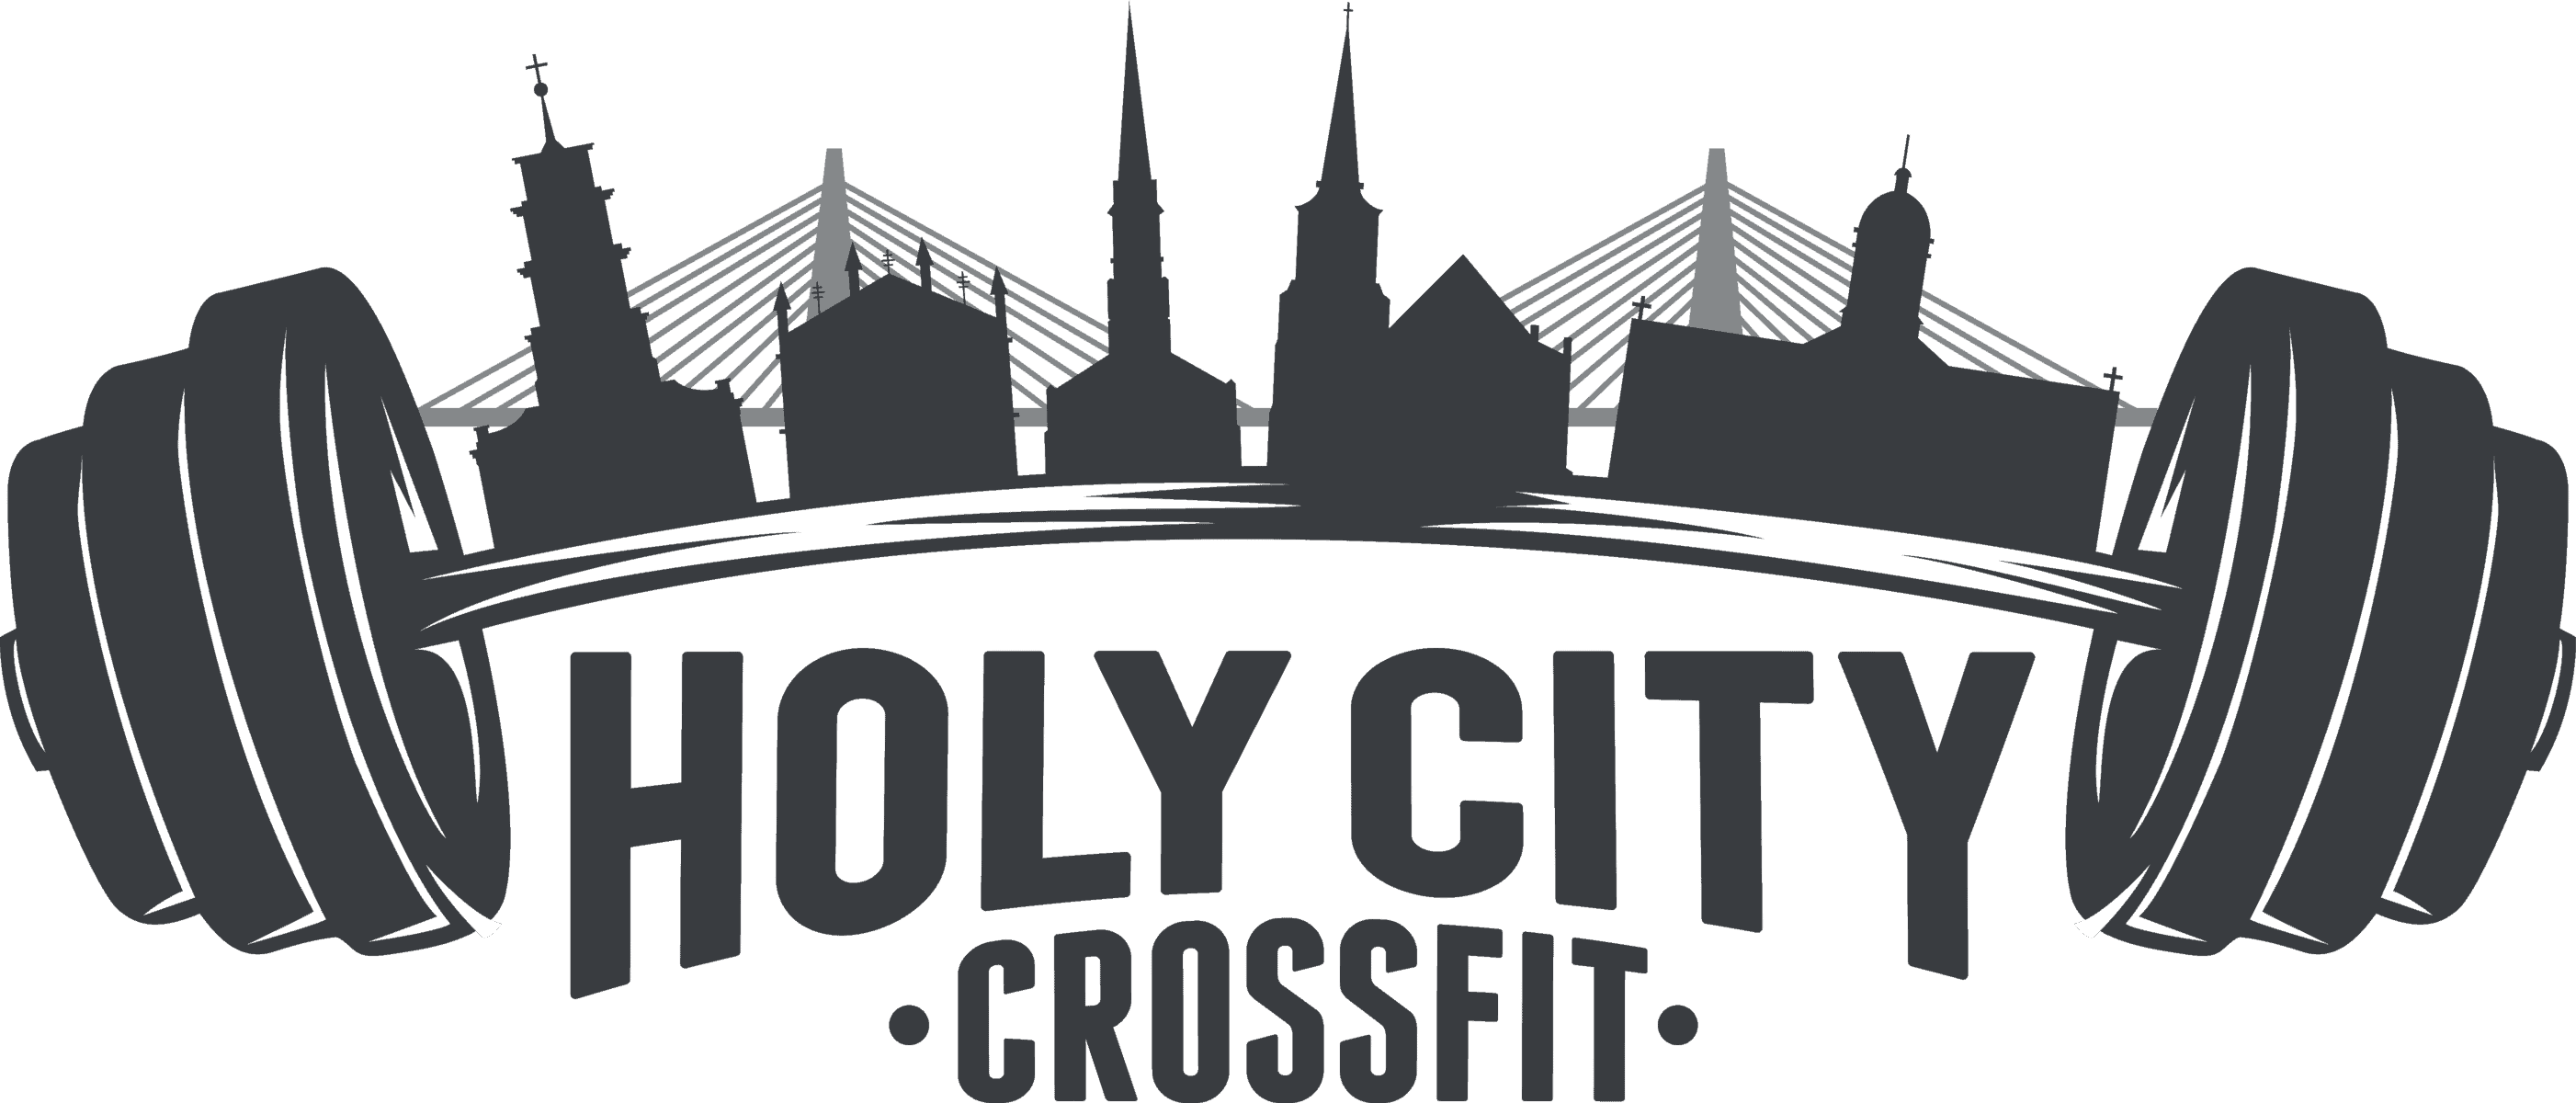 Holy City CrossFit